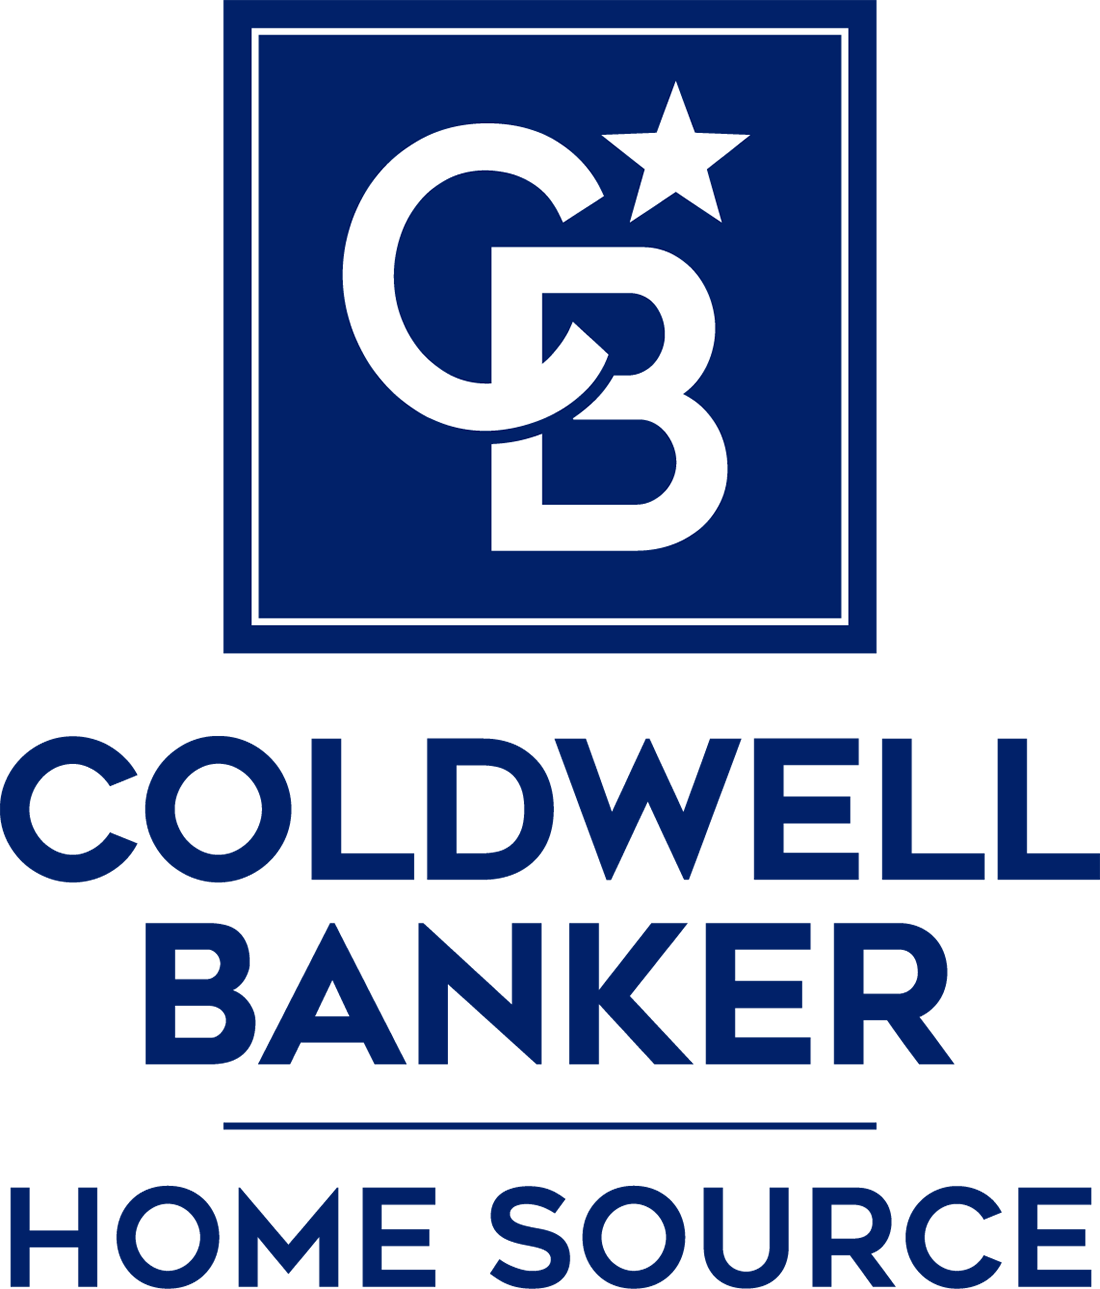 Debbie Guy - Coldwell Banker Home Source Logo